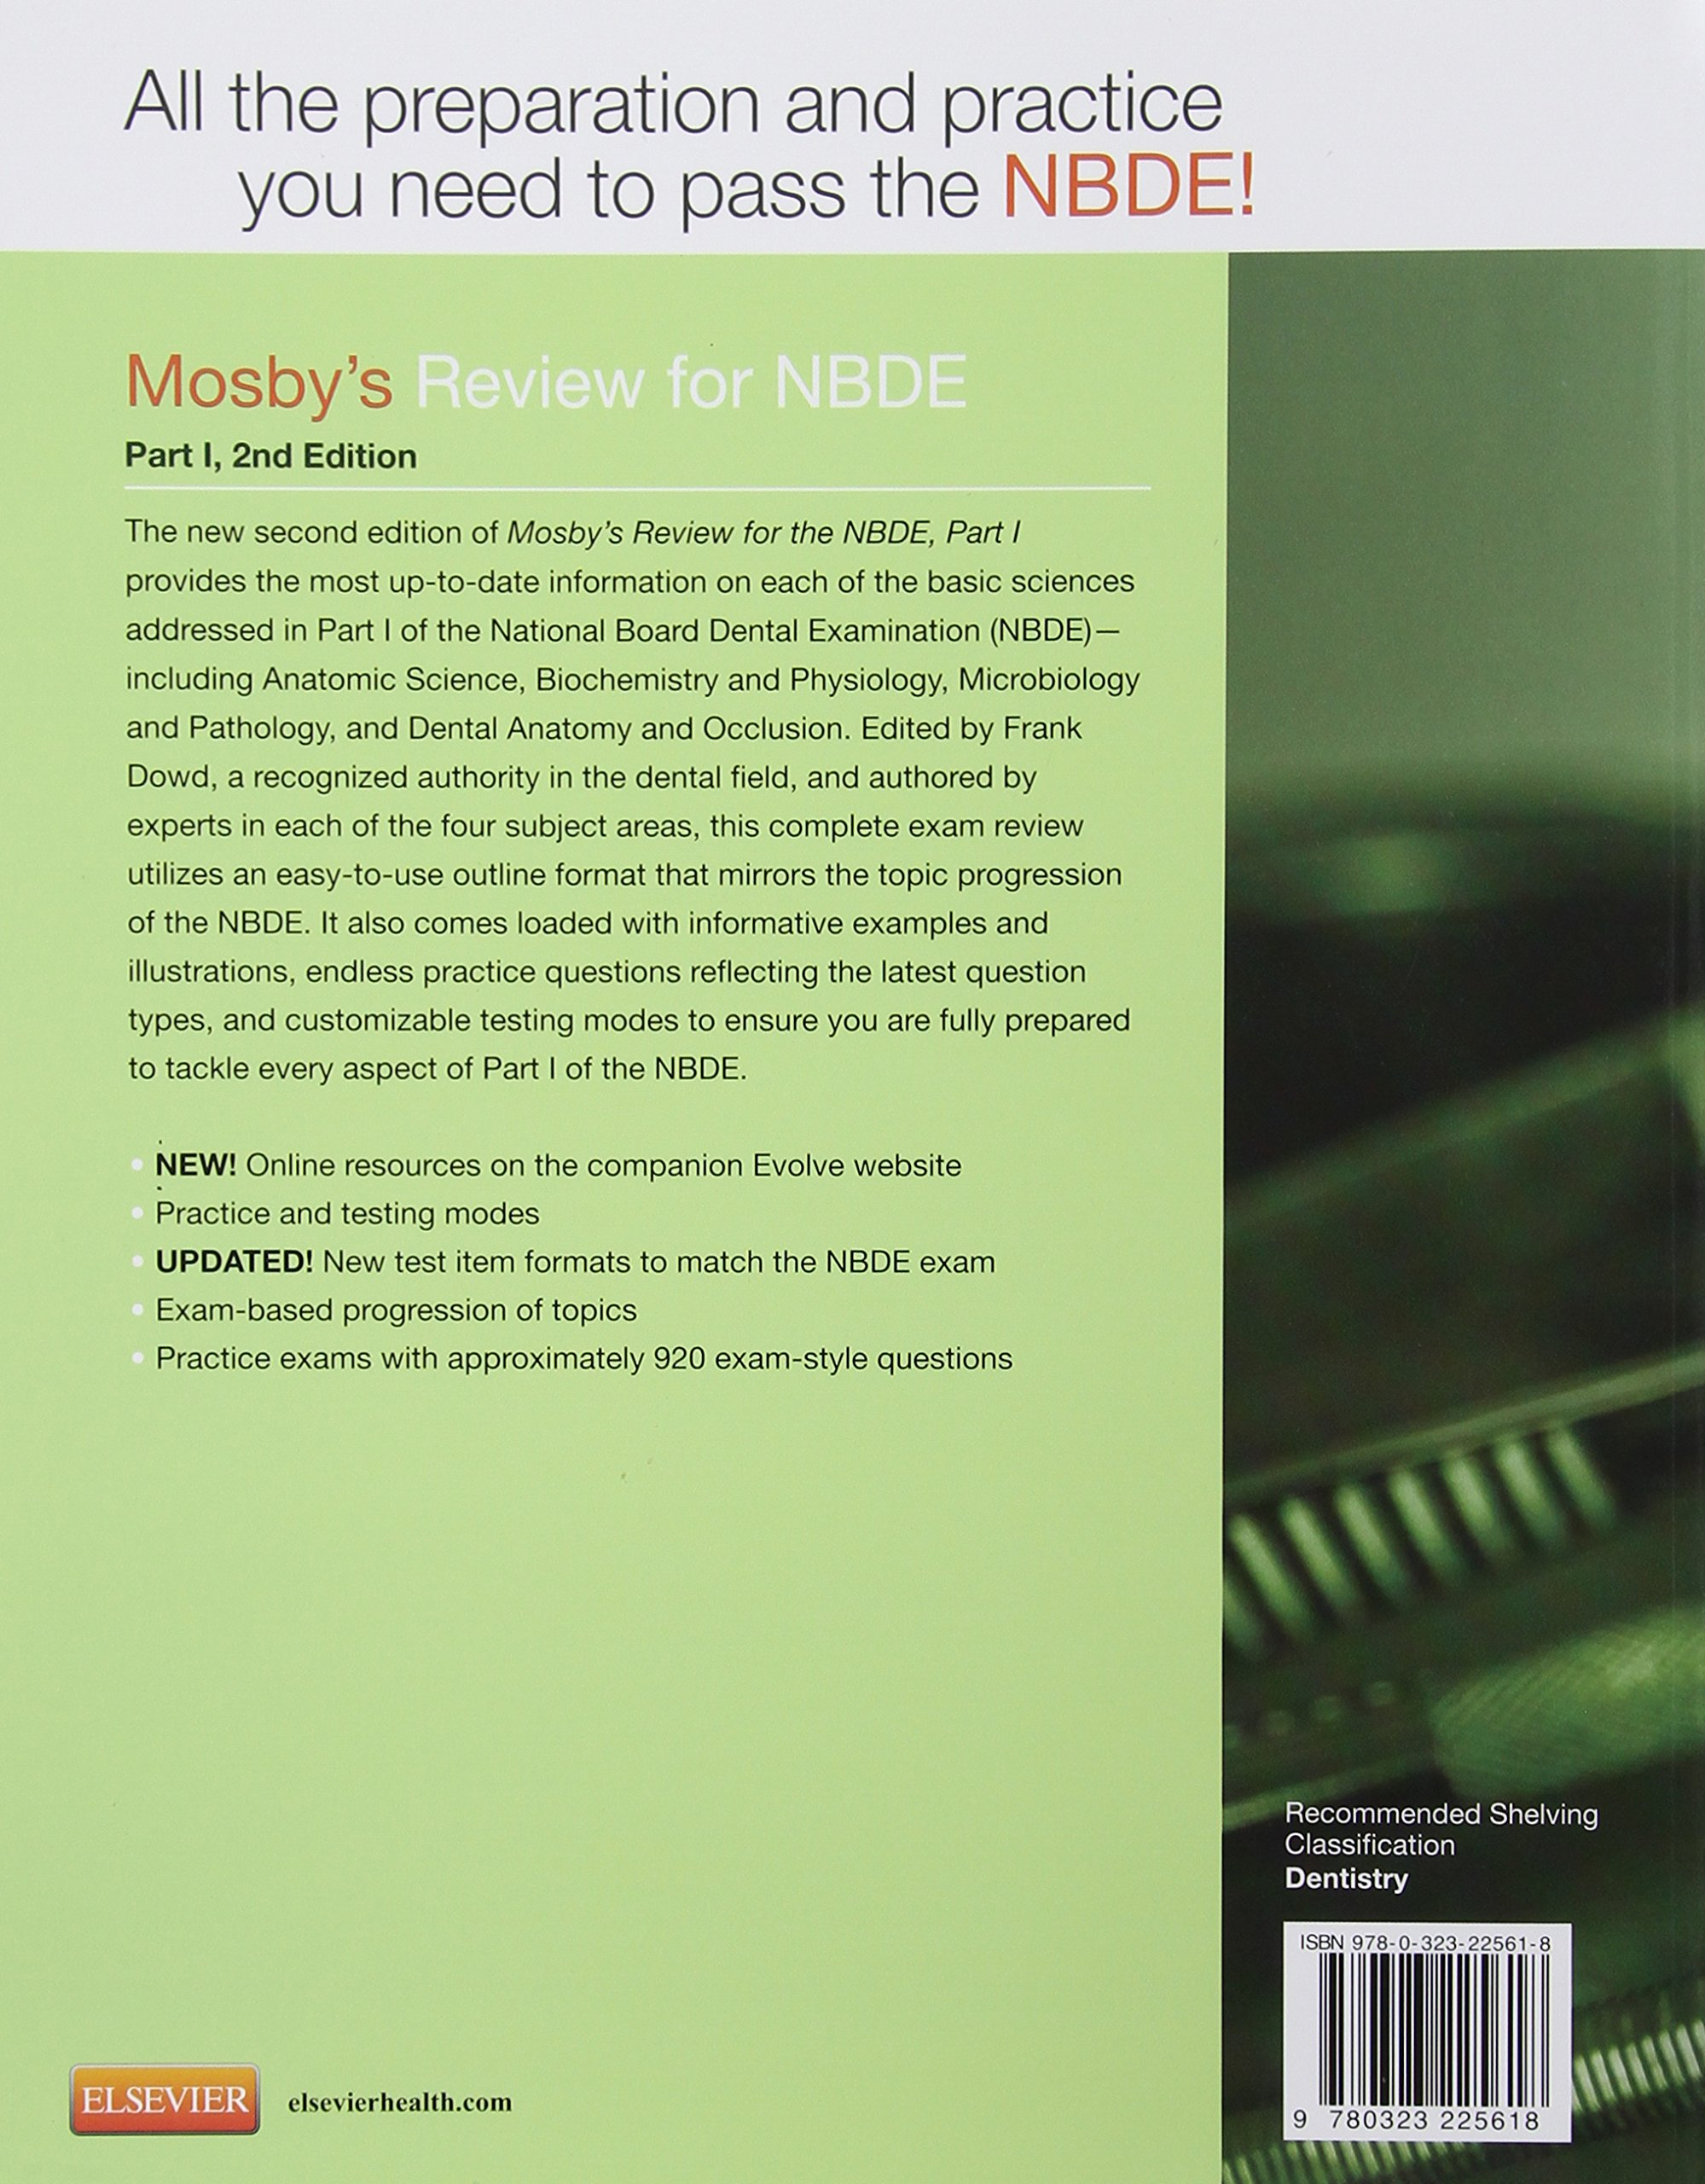 Mosby's Review for the NBDE Part I, 2e: Amazon.co.uk: Mosby: 9780323225618:  Books